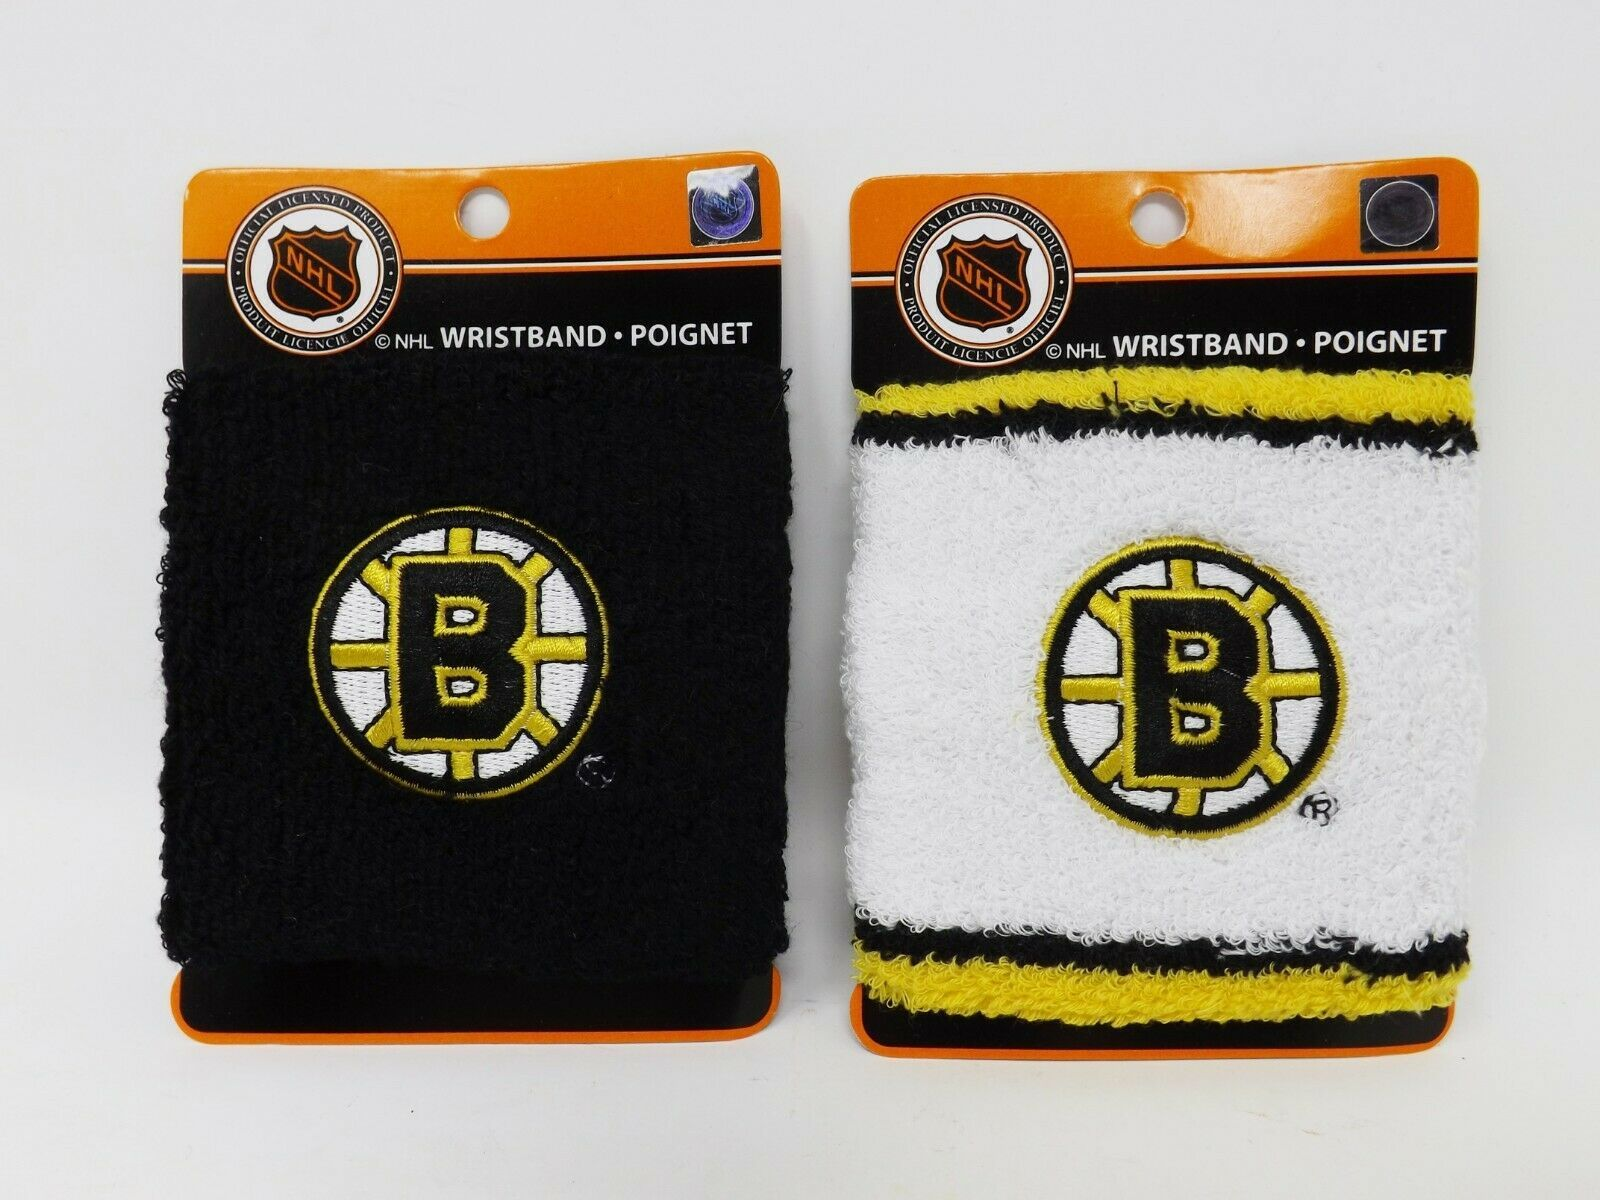 Primary image for Gertex Hosiery NHL Boston Bruins Wristband - New